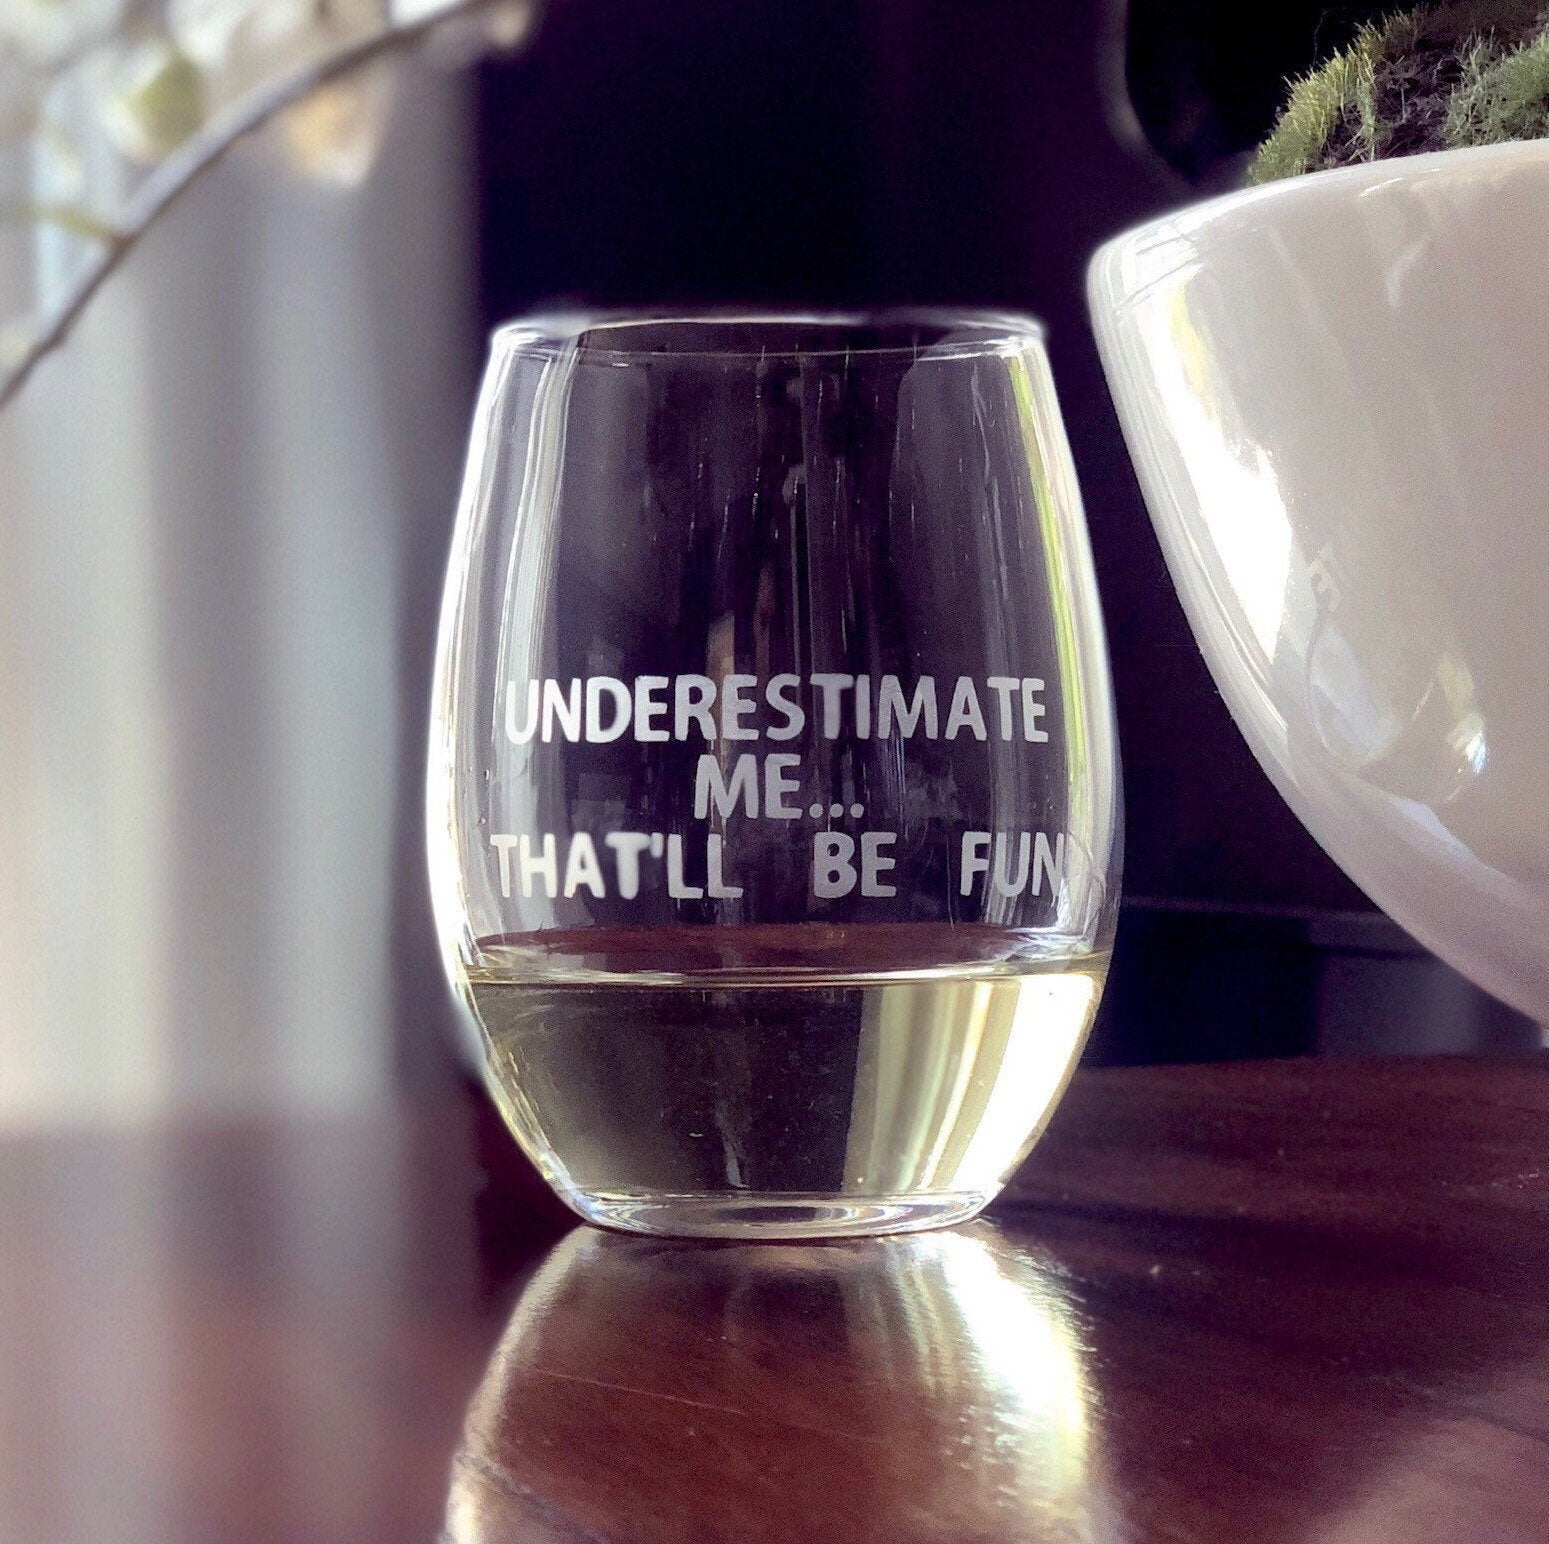 Funny glass, funny quote, glass with attitude, humorous gift, funny glass for friend, gift with attitude, underestimate me, fun gifts